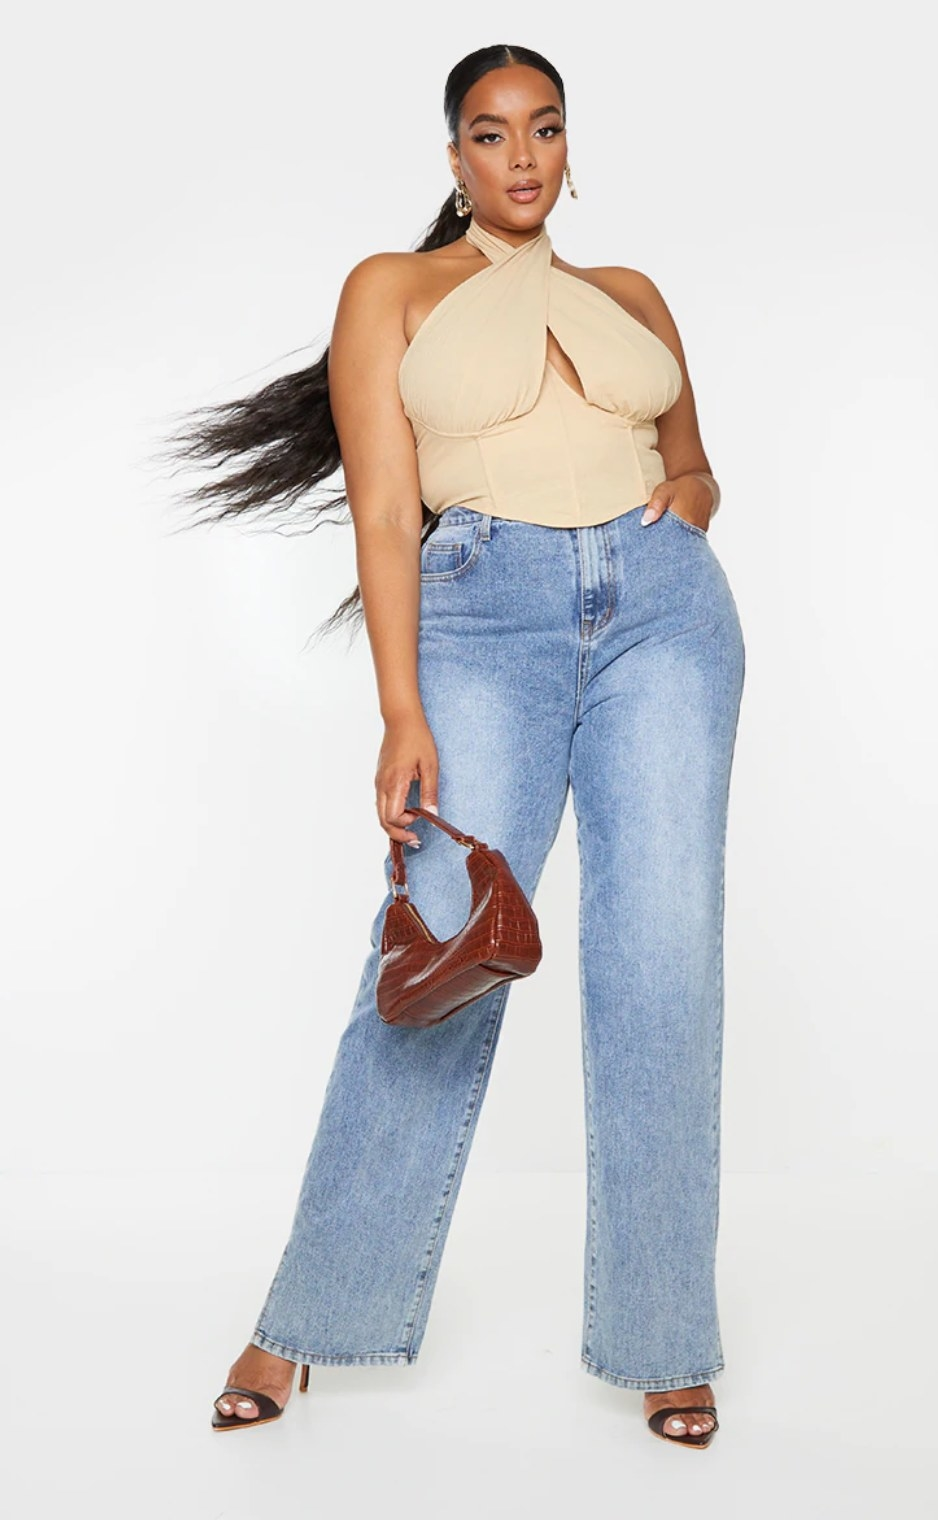 model wearing the oatmeal colored top with corset front tied at the neck over blue flare jeans with a brown handbag